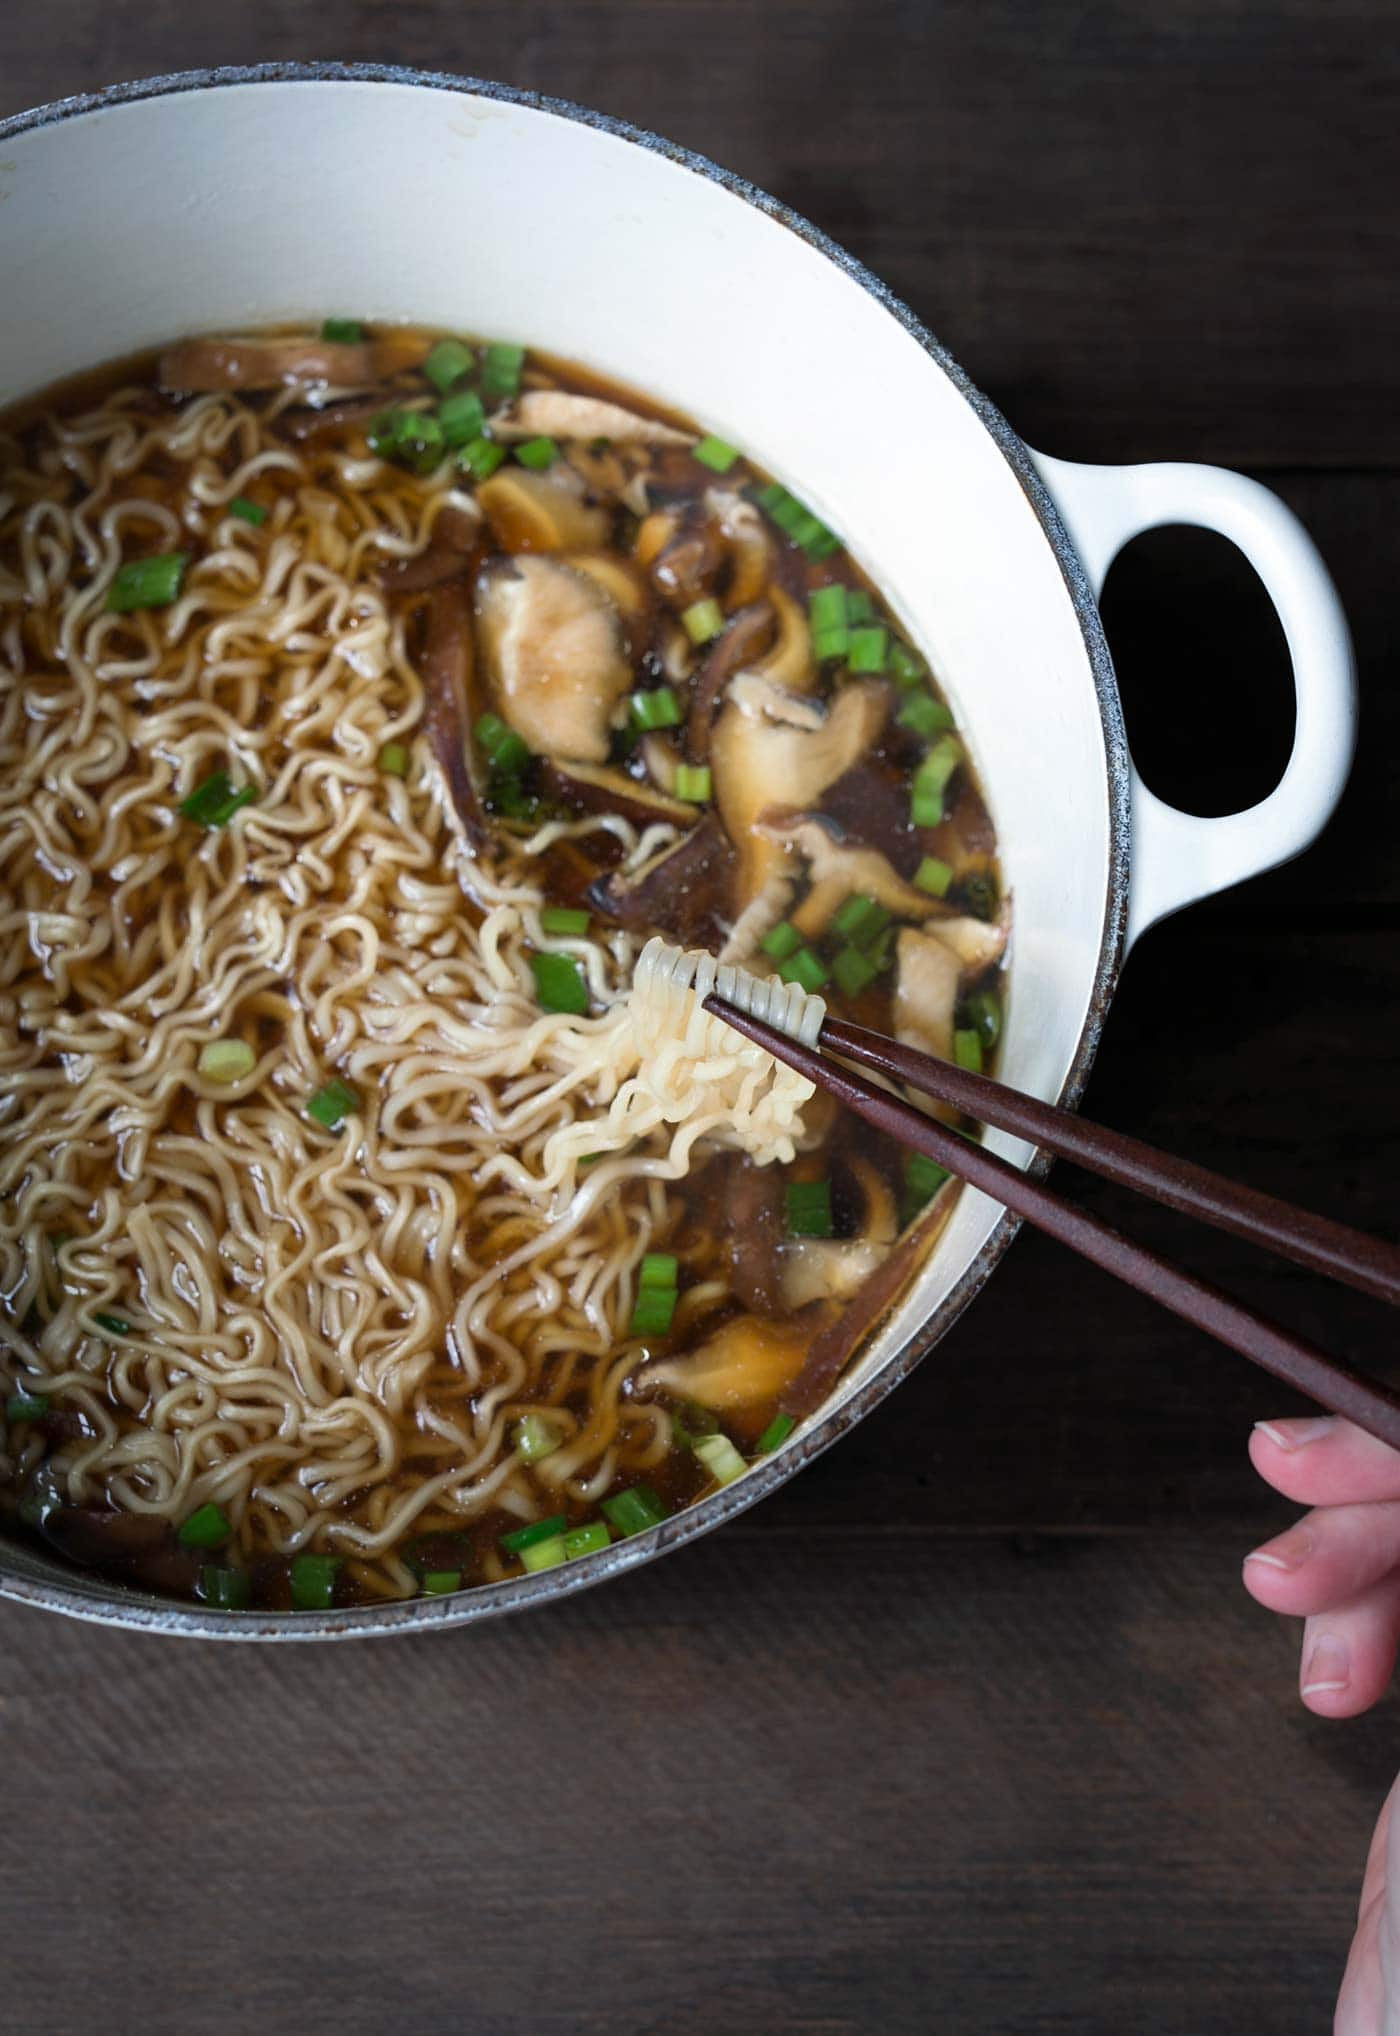 This easy homemade ramen comes together in just 15 minutes. A few simple ingredients create a rich mushroom broth that is incredibly flavorful. Get the recipe from SavorySimple.net